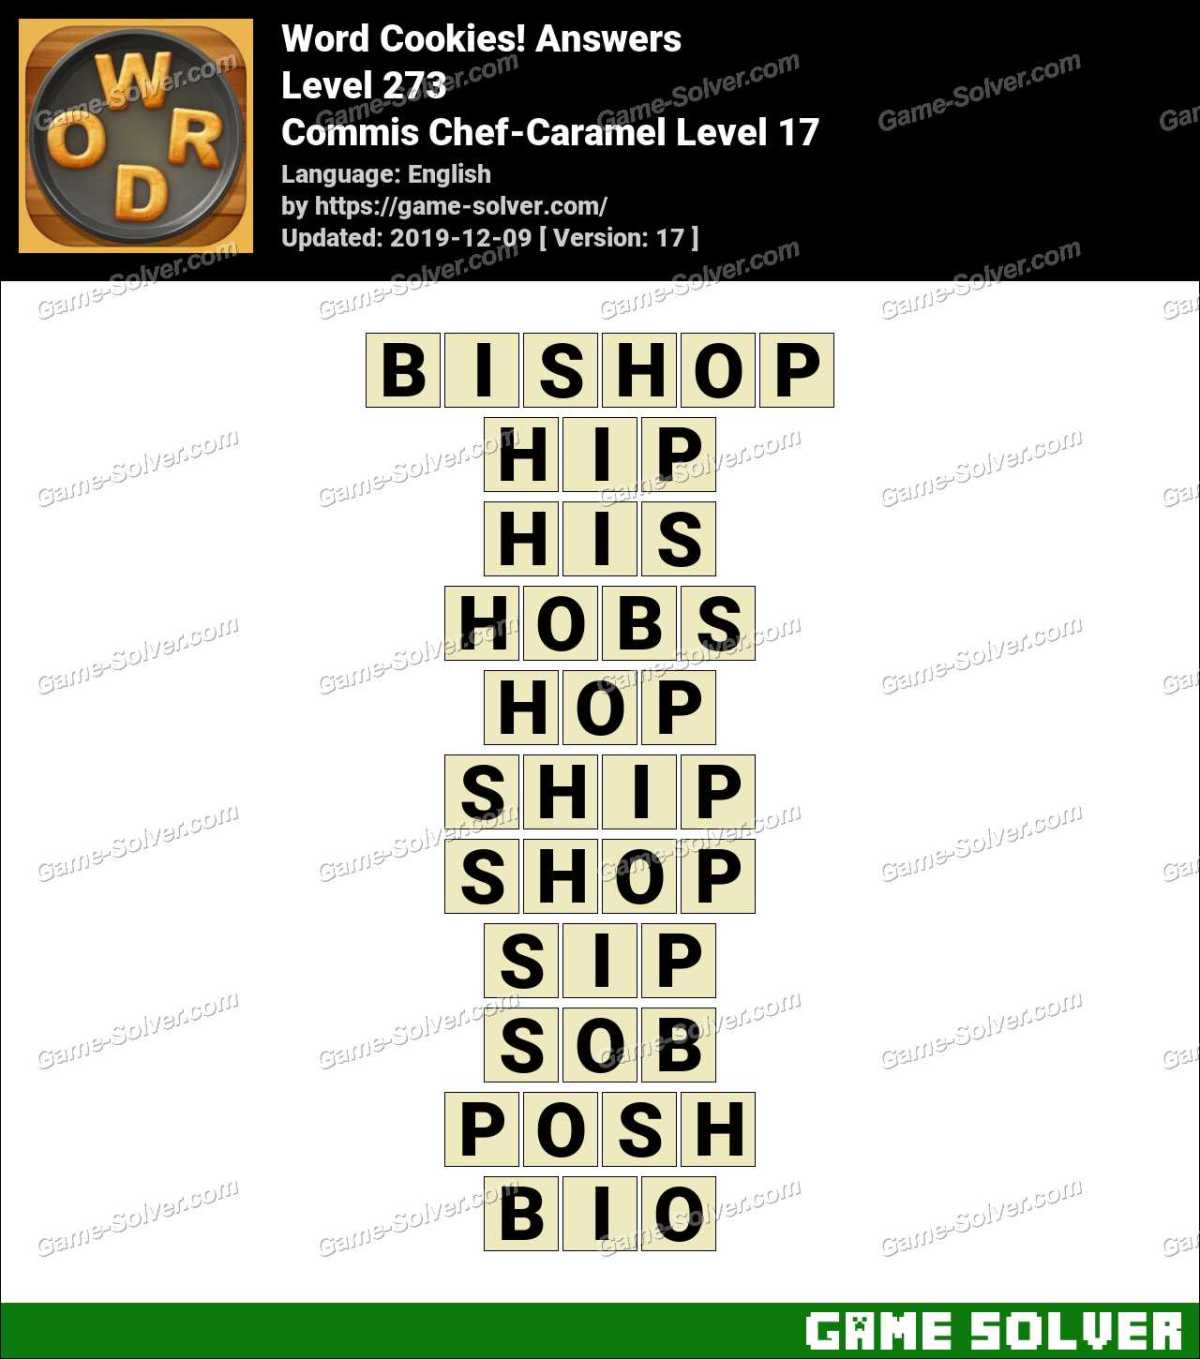 Word Cookies Commis Chef-Caramel Level 17 Answers